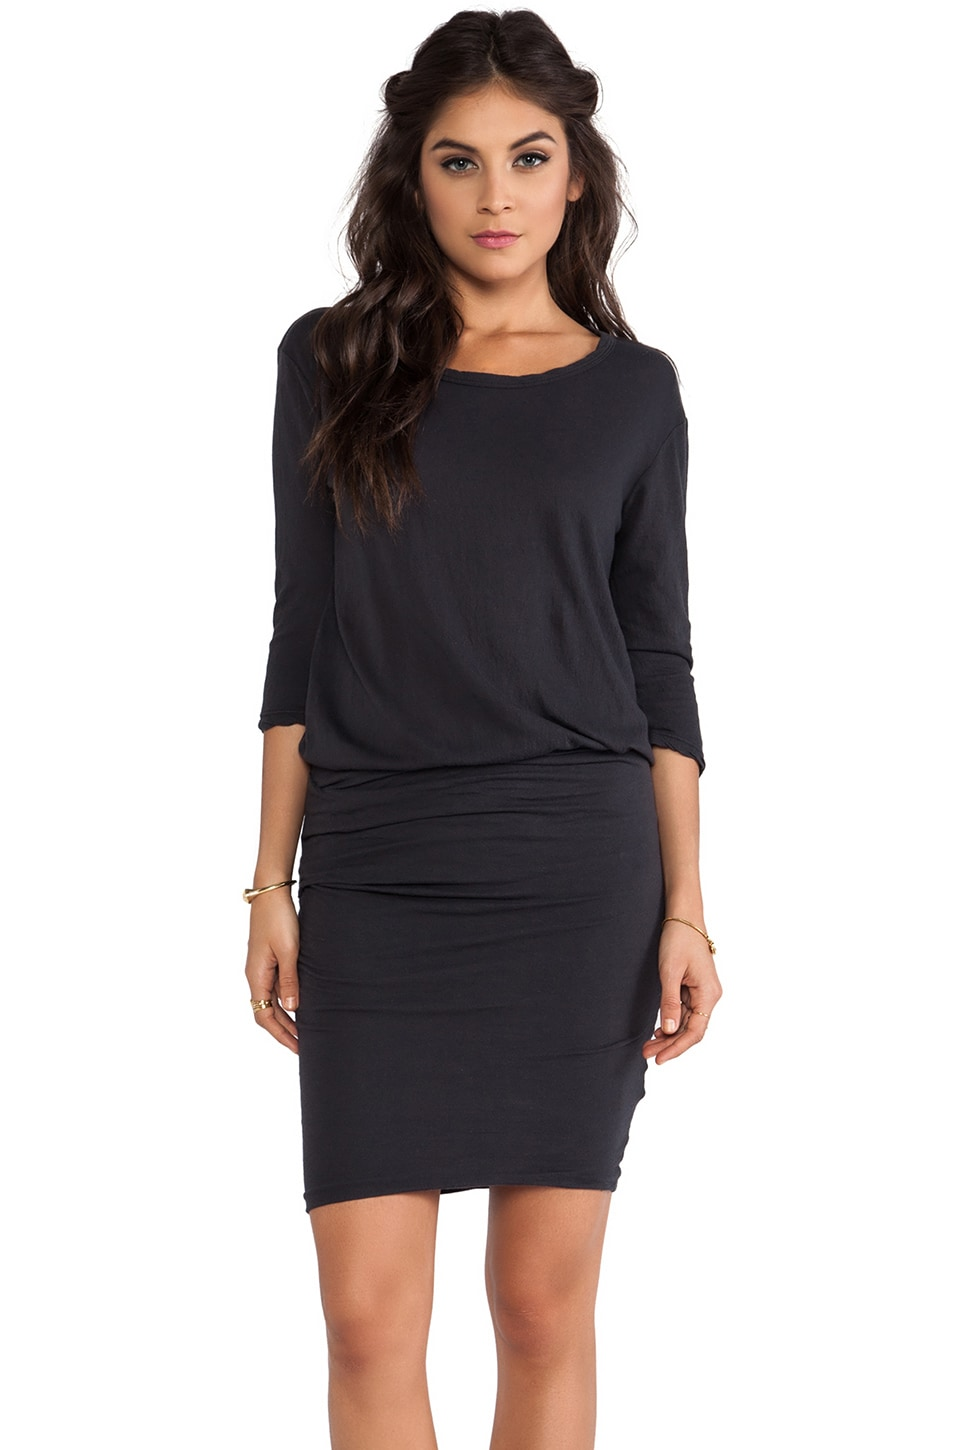 James Perse Crepe Jersey Dress in Carbon